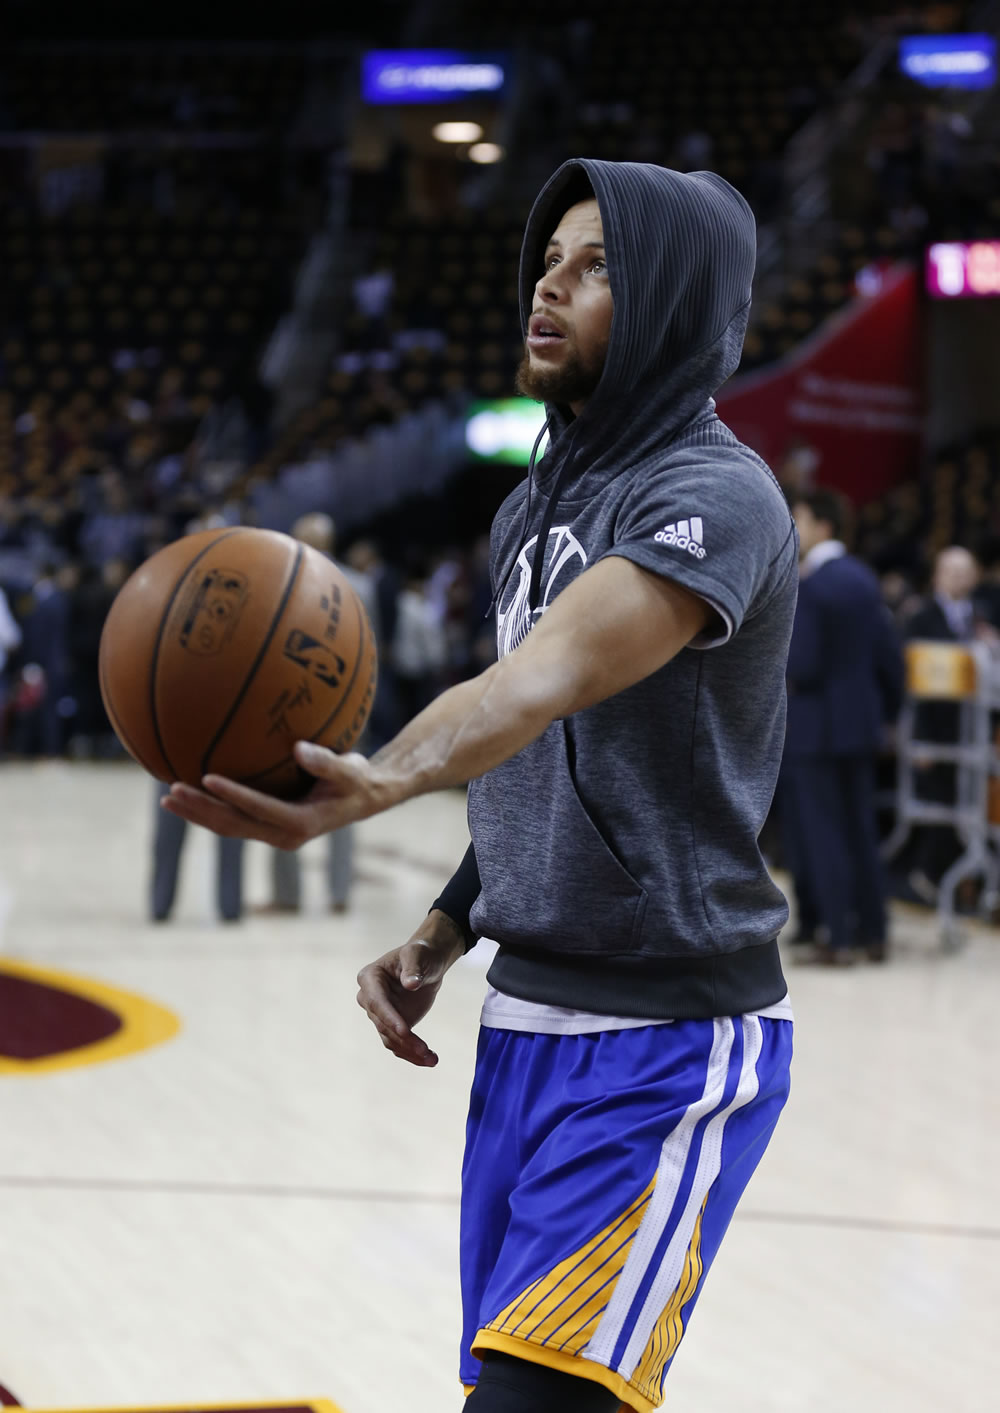 "<div class=""meta image-caption""><div class=""origin-logo origin-image none""><span>none</span></div><span class=""caption-text"">Stephen Curry warms up ahead of the NBA Finals in Cleveland, Ohio on Wednesday, June 7, 2017. (KGO-TV)</span></div>"